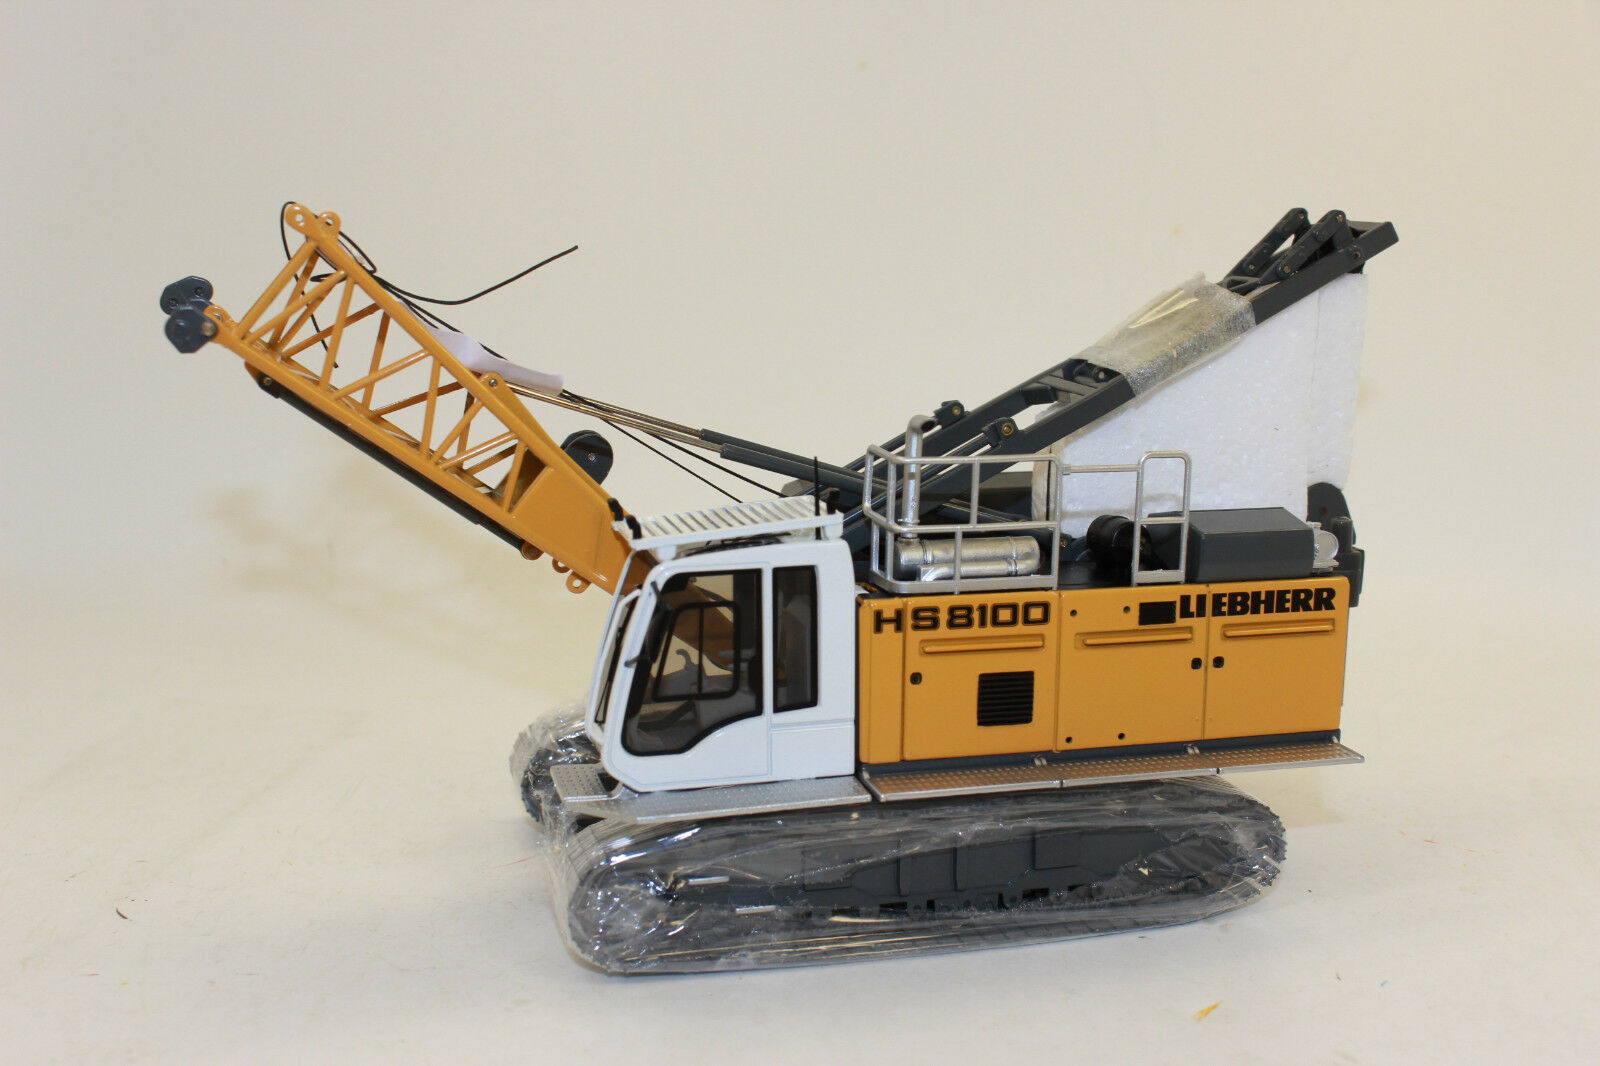 NZG 945 Liebherr hydpinkilbagger HS 8100 HD Litronic 1 50 New with OVP